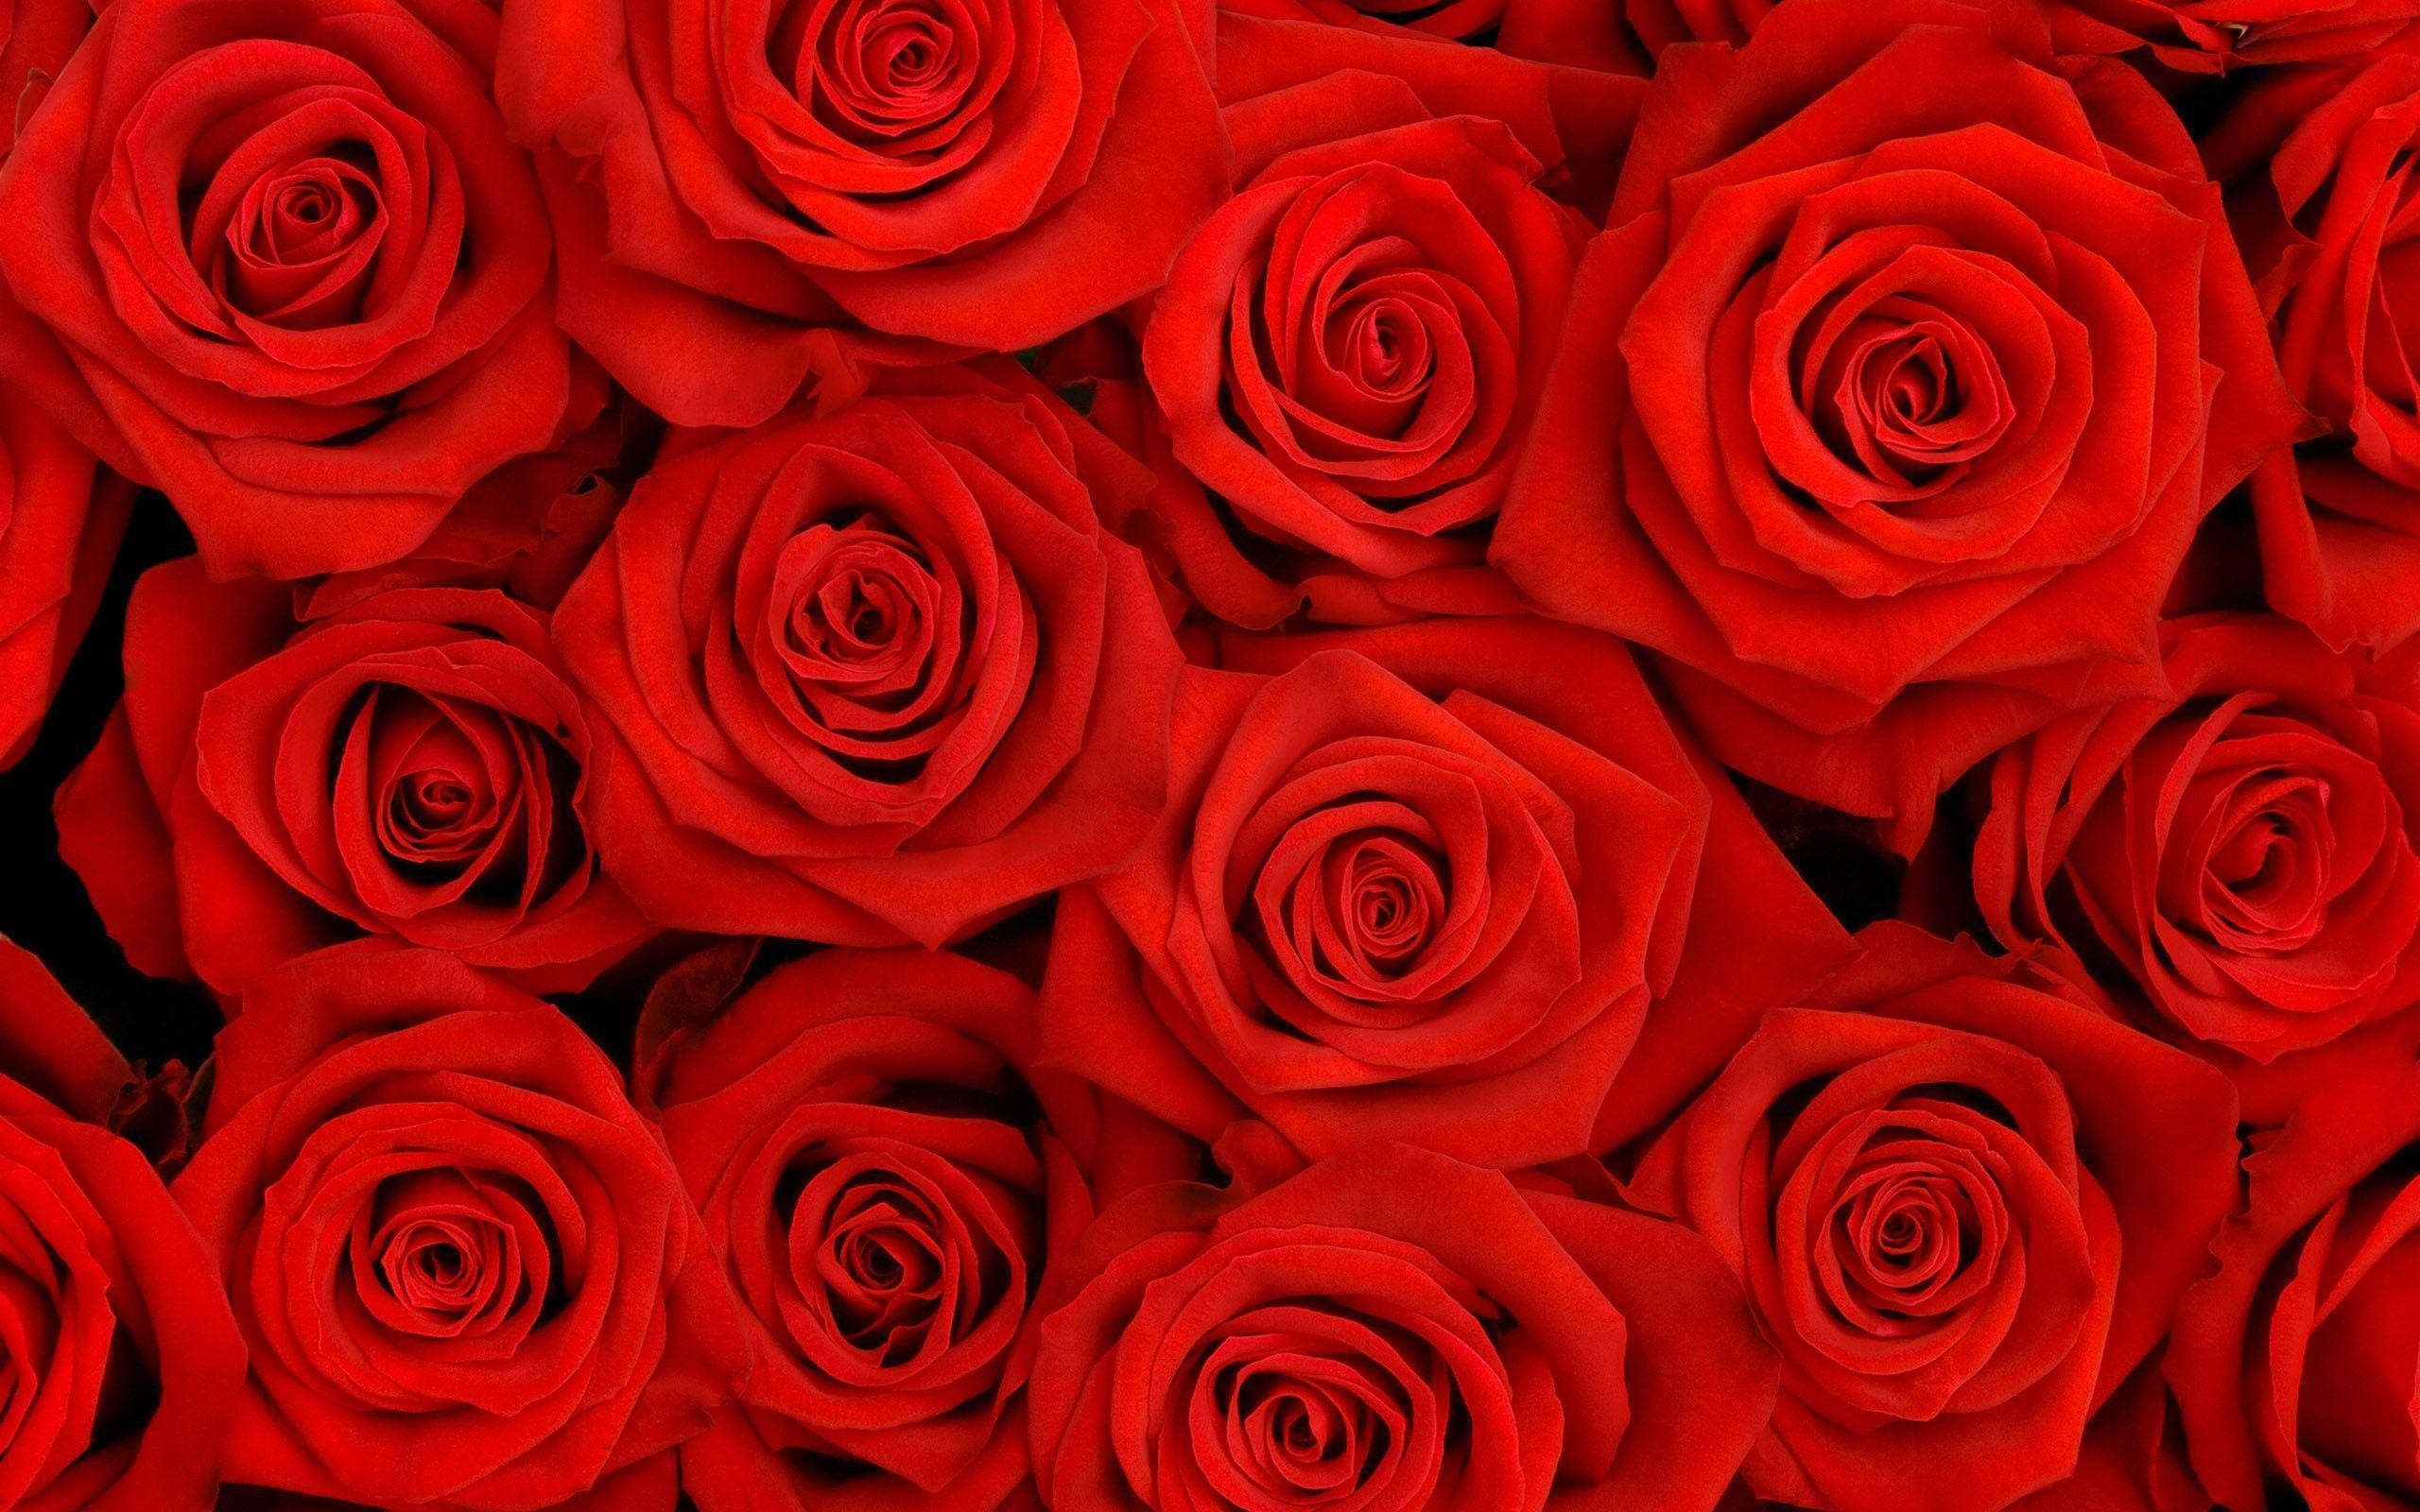 Roses Wallpapers